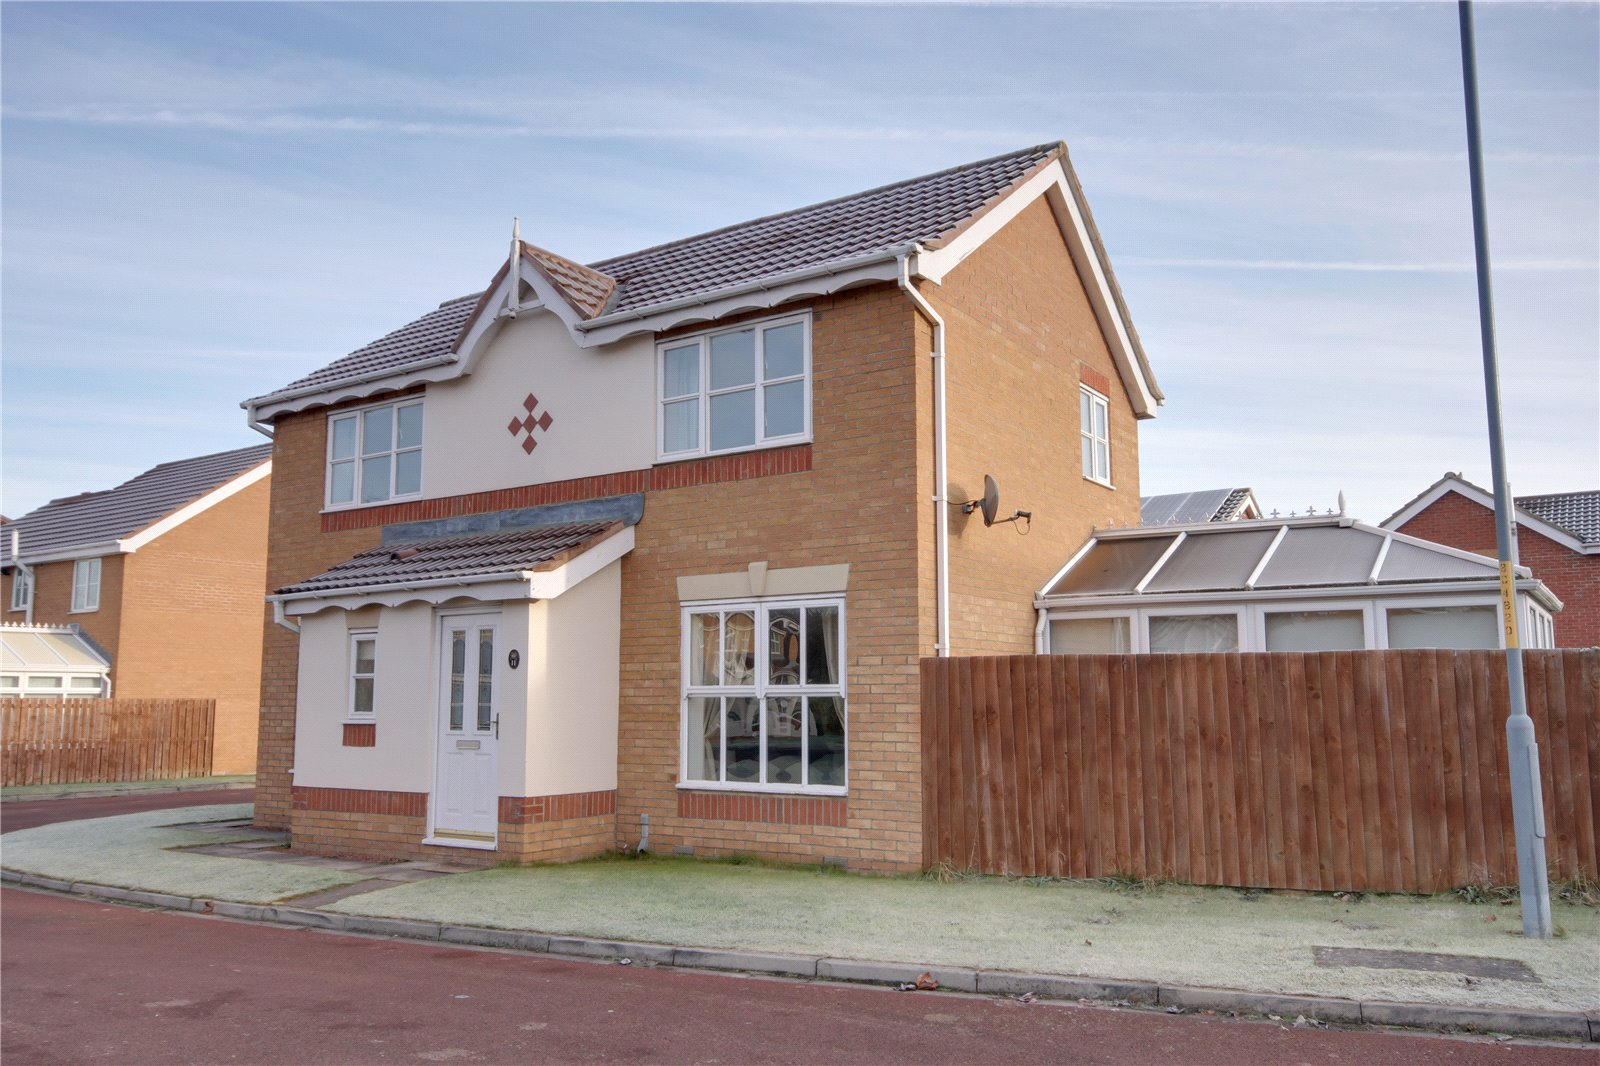 3 bed house to rent in Chaldron Way, Eaglescliffe  - Property Image 1